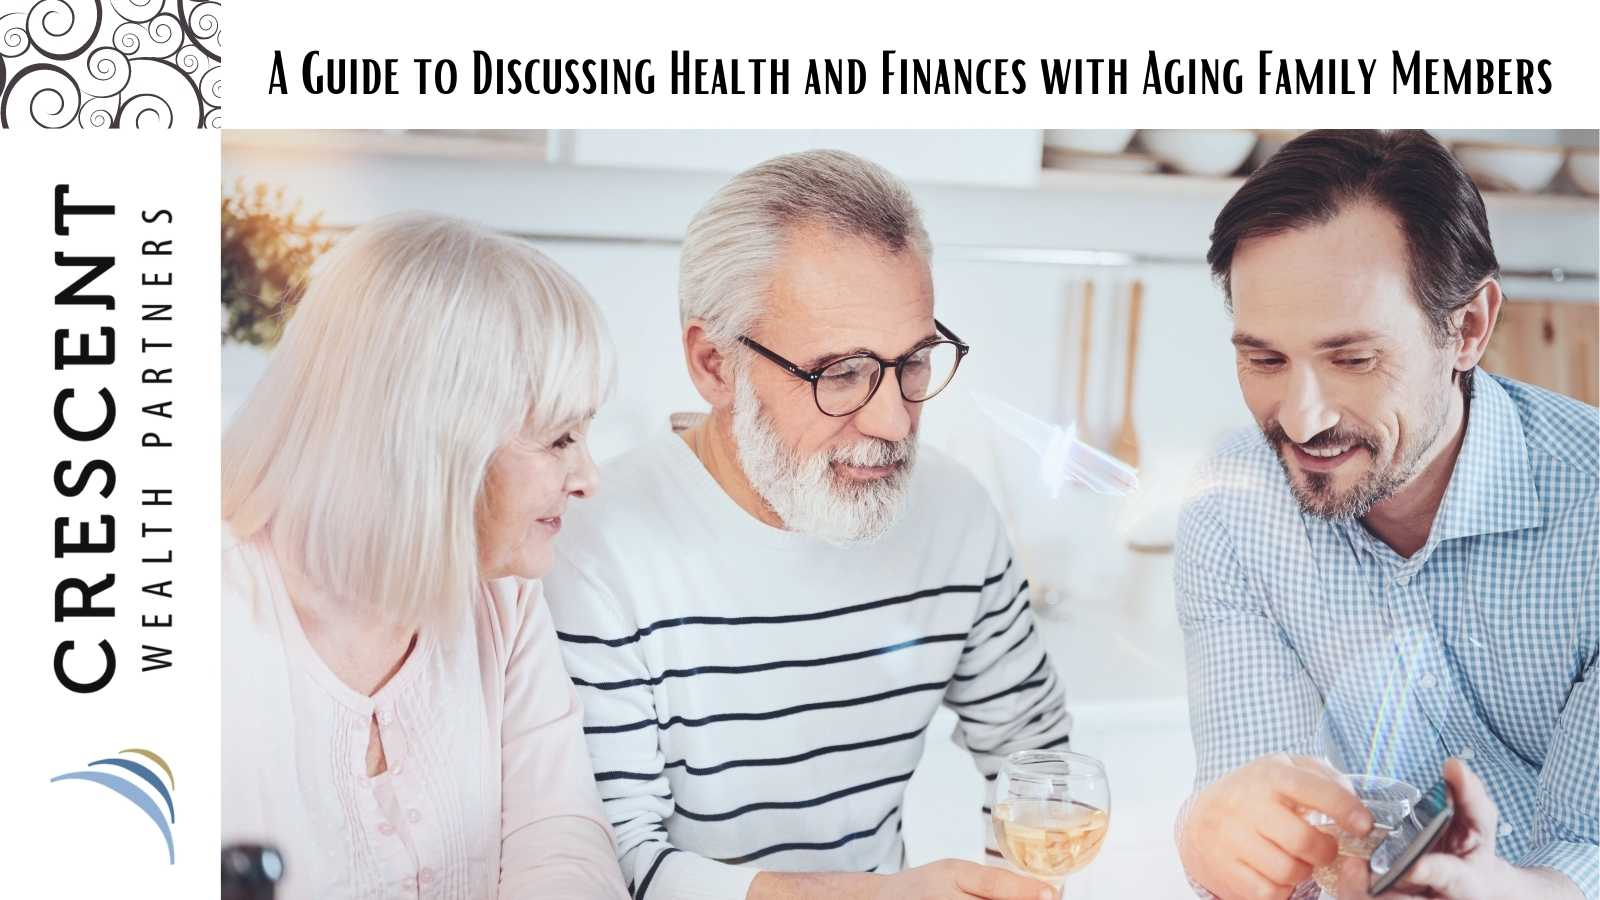 A Guide to Discussing Health and Finances with Aging Family Members